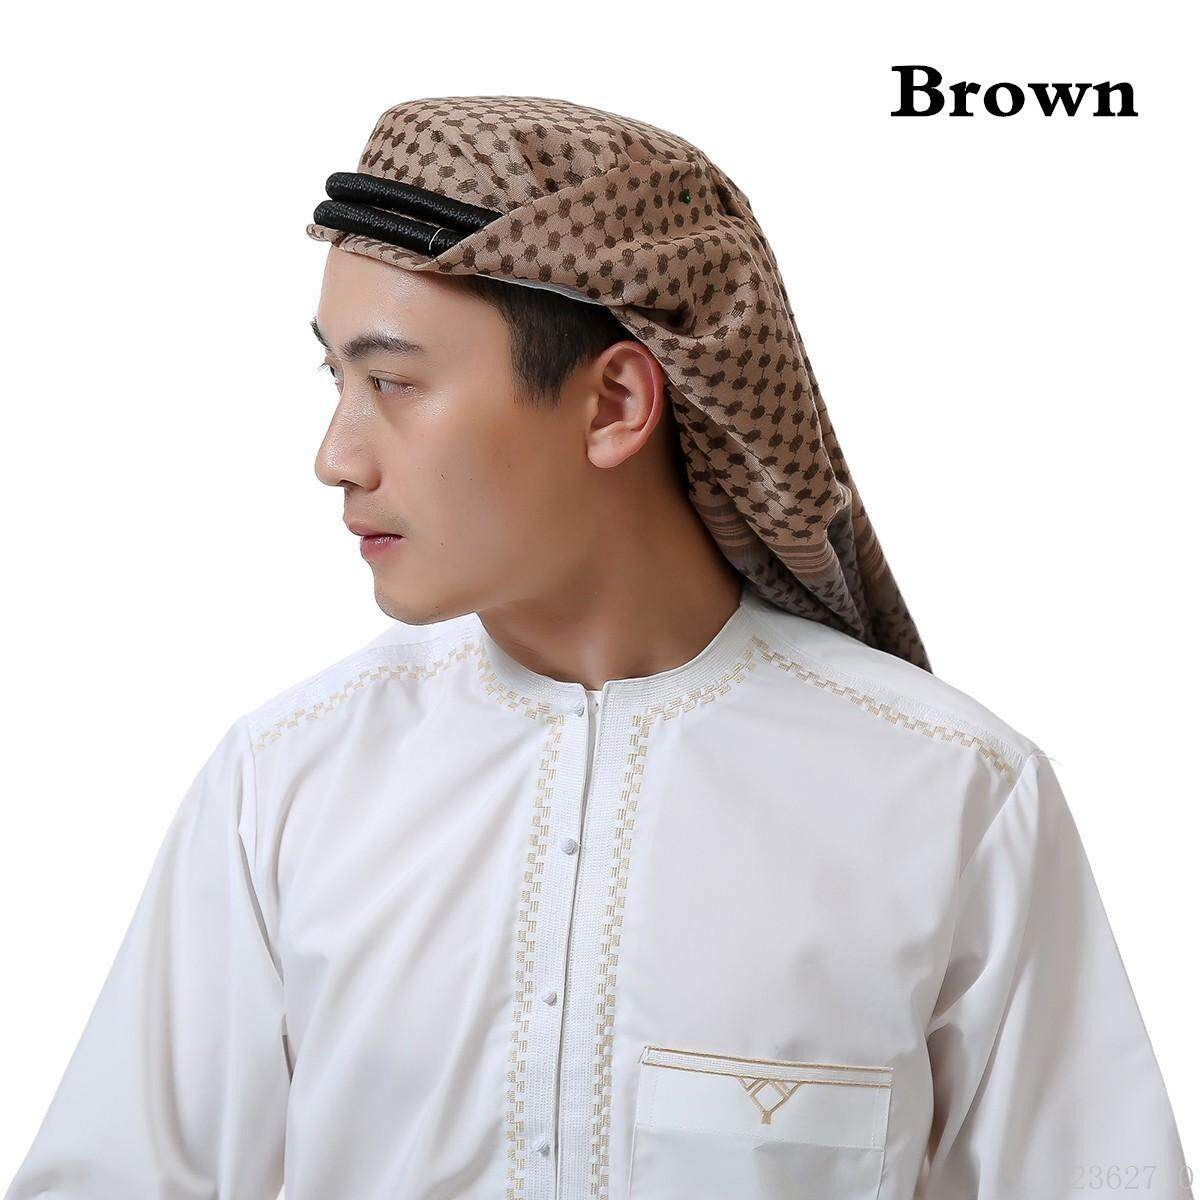 Muslim Wear For Men Sale Islamic Online Brands Sorban Long Black Shirt Prices Reviews In Philippines